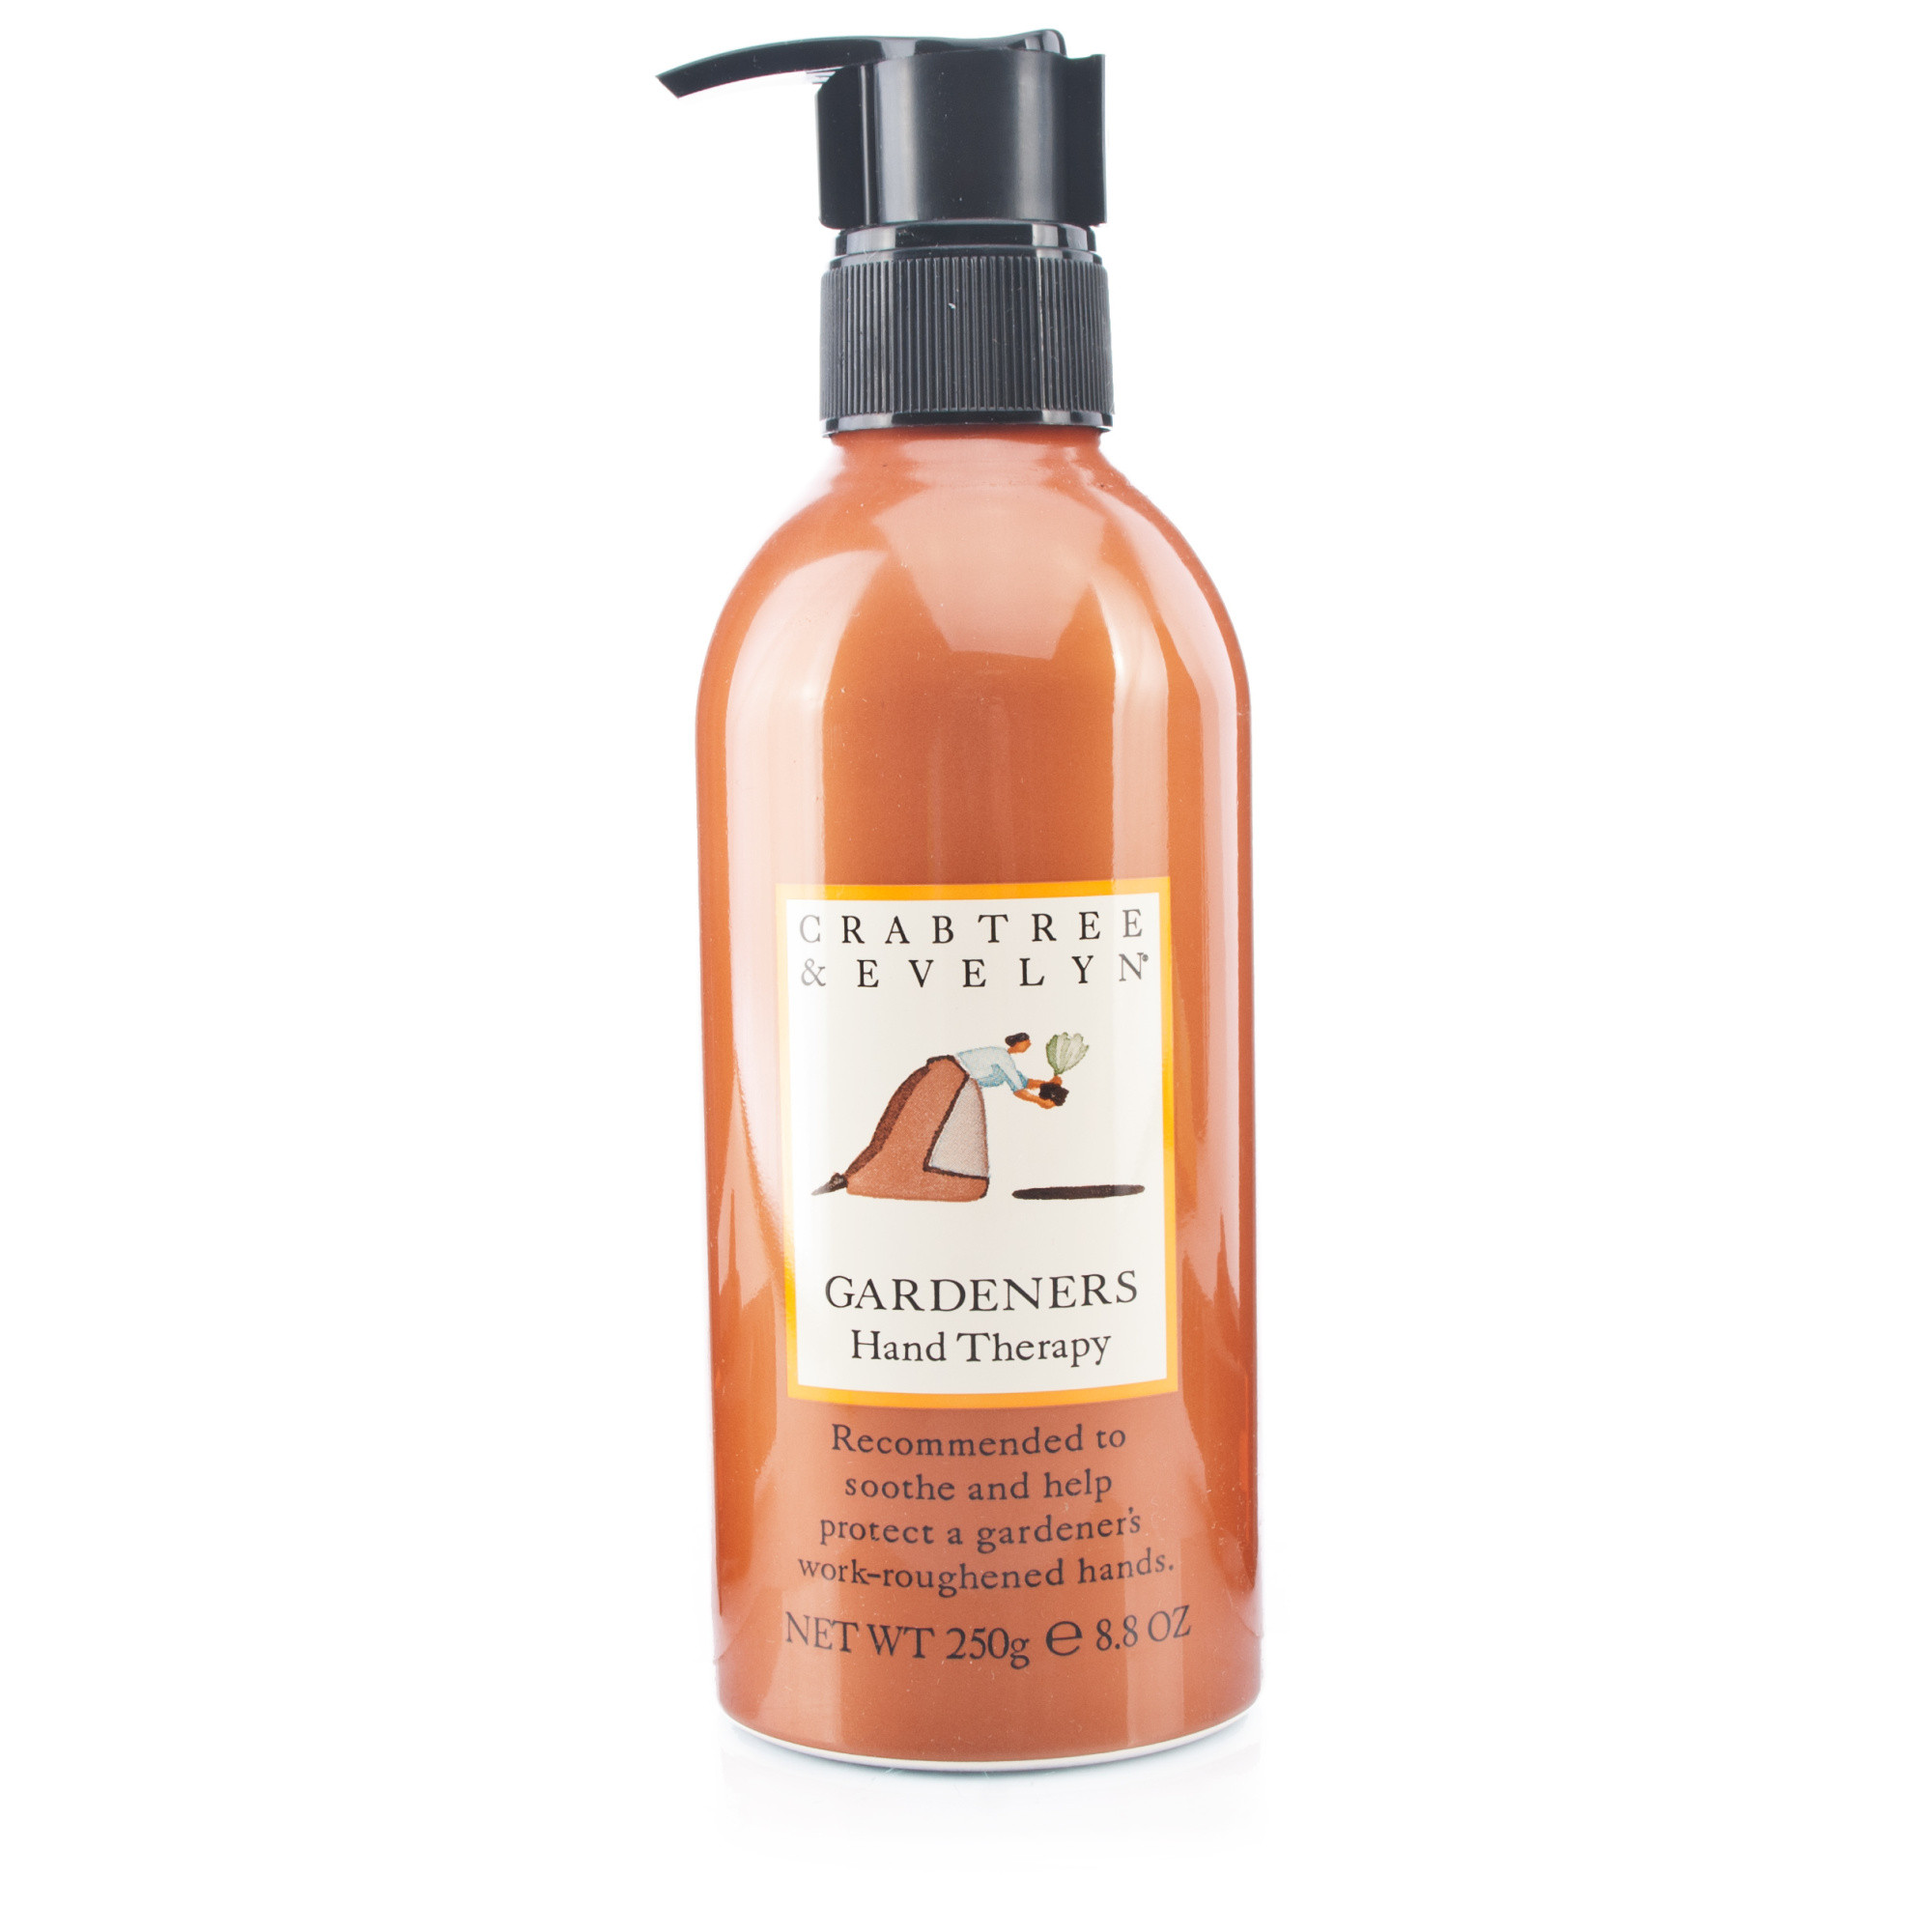 Crabtree Evelyn Gardeners Hand Therapy Chemist Direct